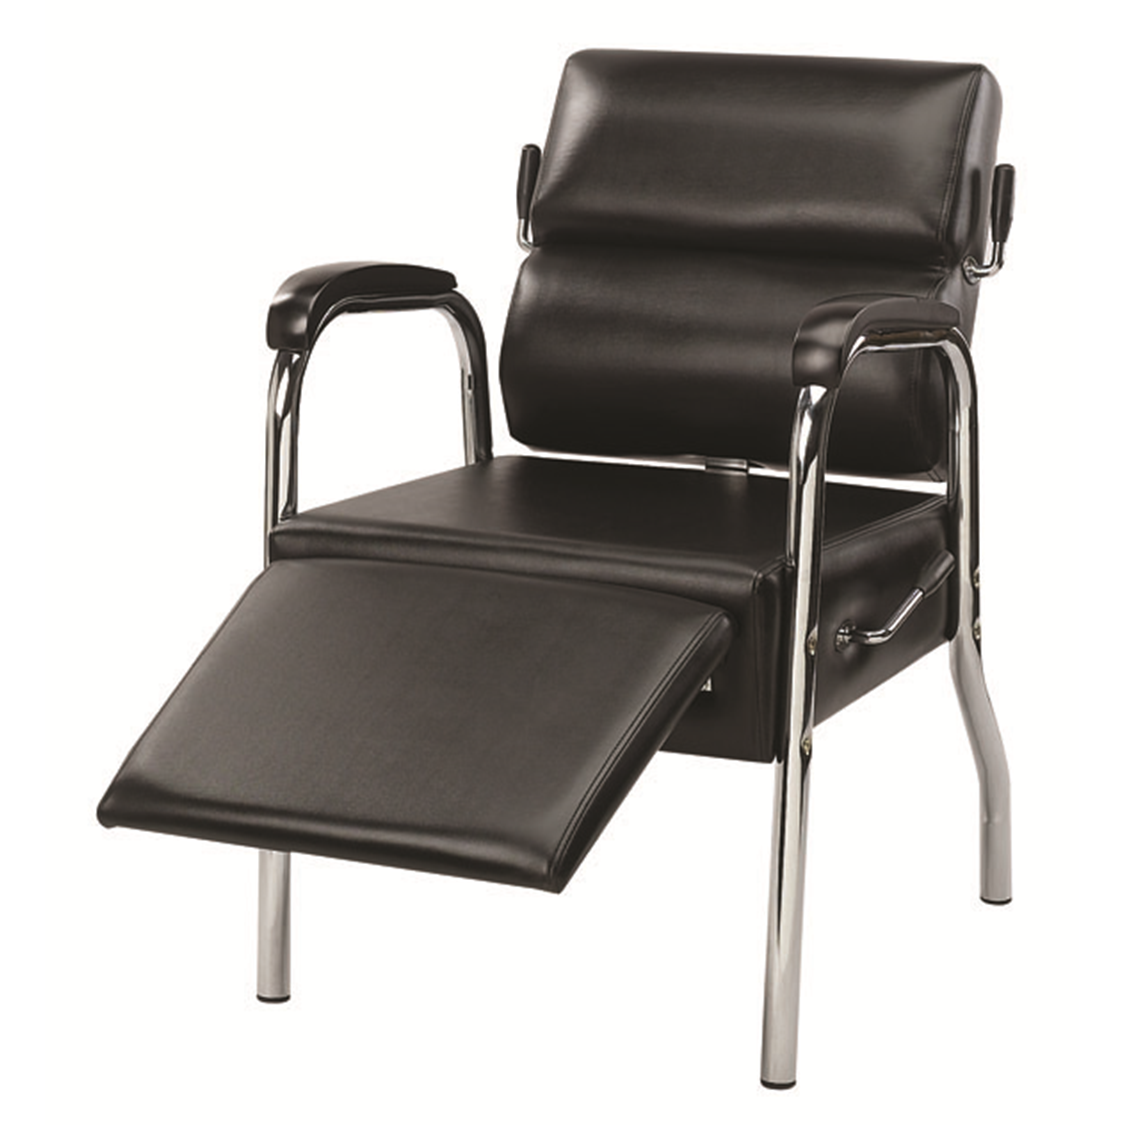 Garfield-Paragon 1465LR Tracy Shampoo Chair